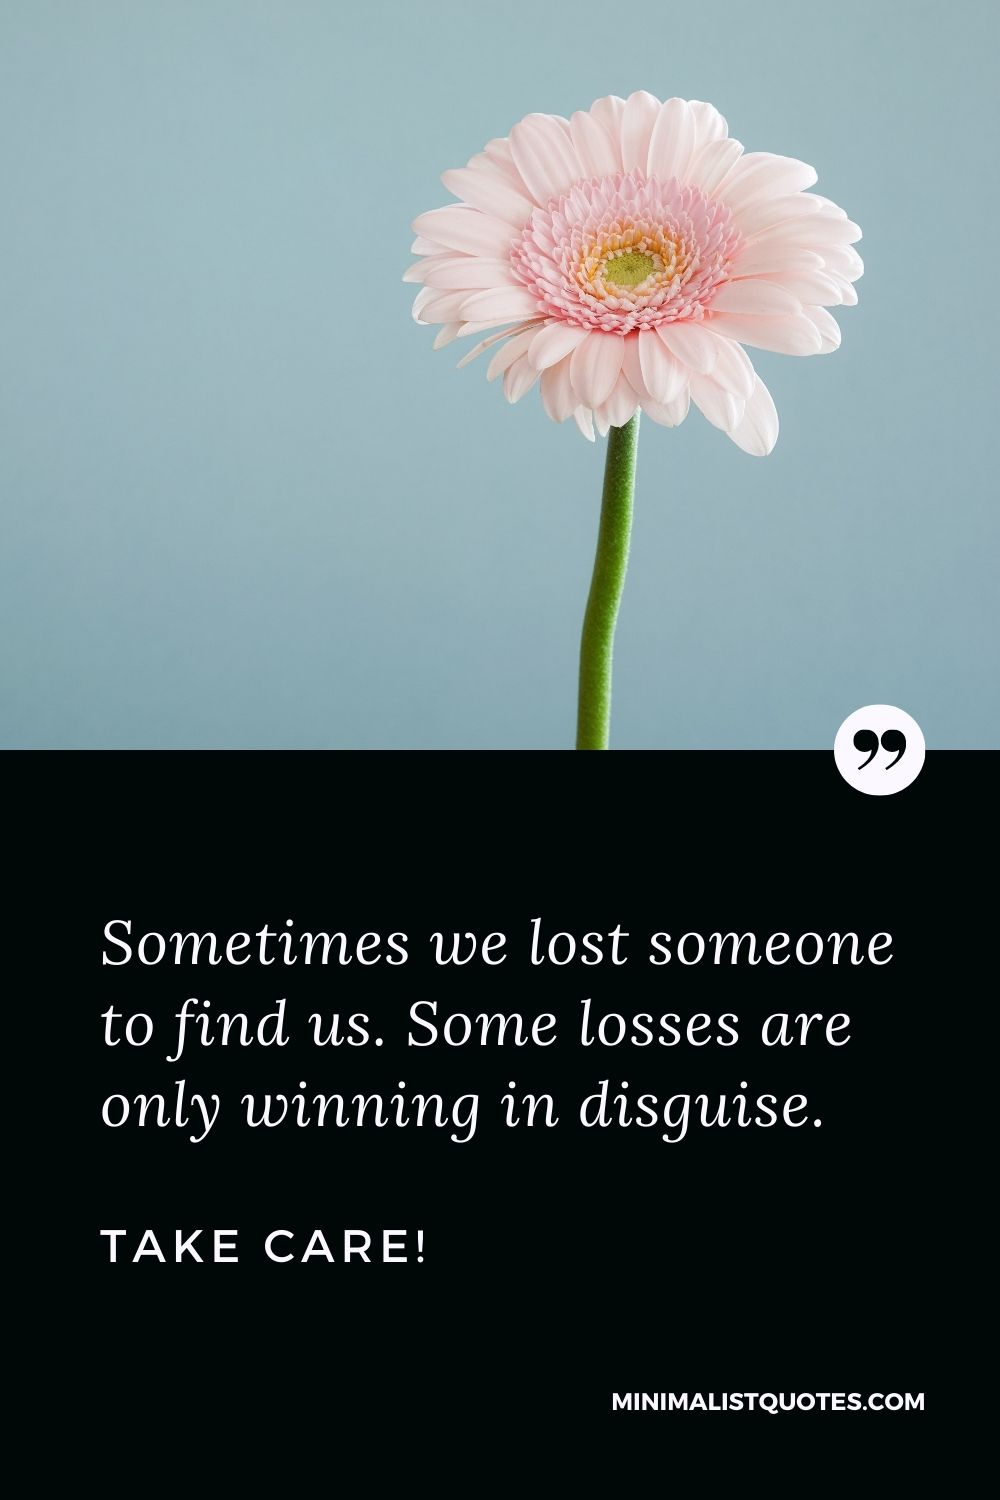 Divorce Quote, Sympathy & Message With Image: Sometimes we lost someone to find us. Some losses are only winning in disguise. Take Care!